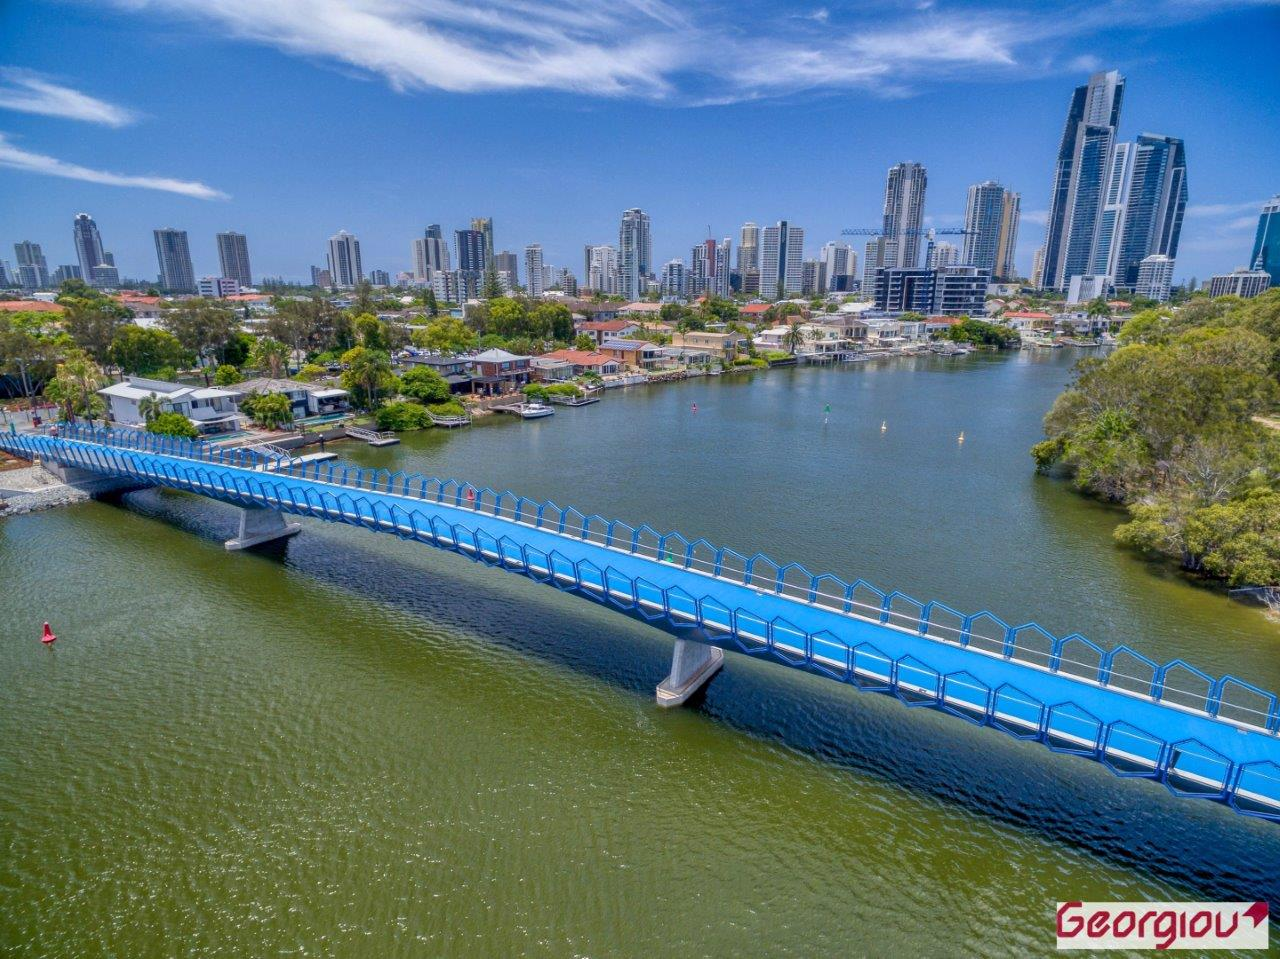 Aerial view of the Green Bridge on the Gold Coast, using professional drones by Rapax Construction Photography